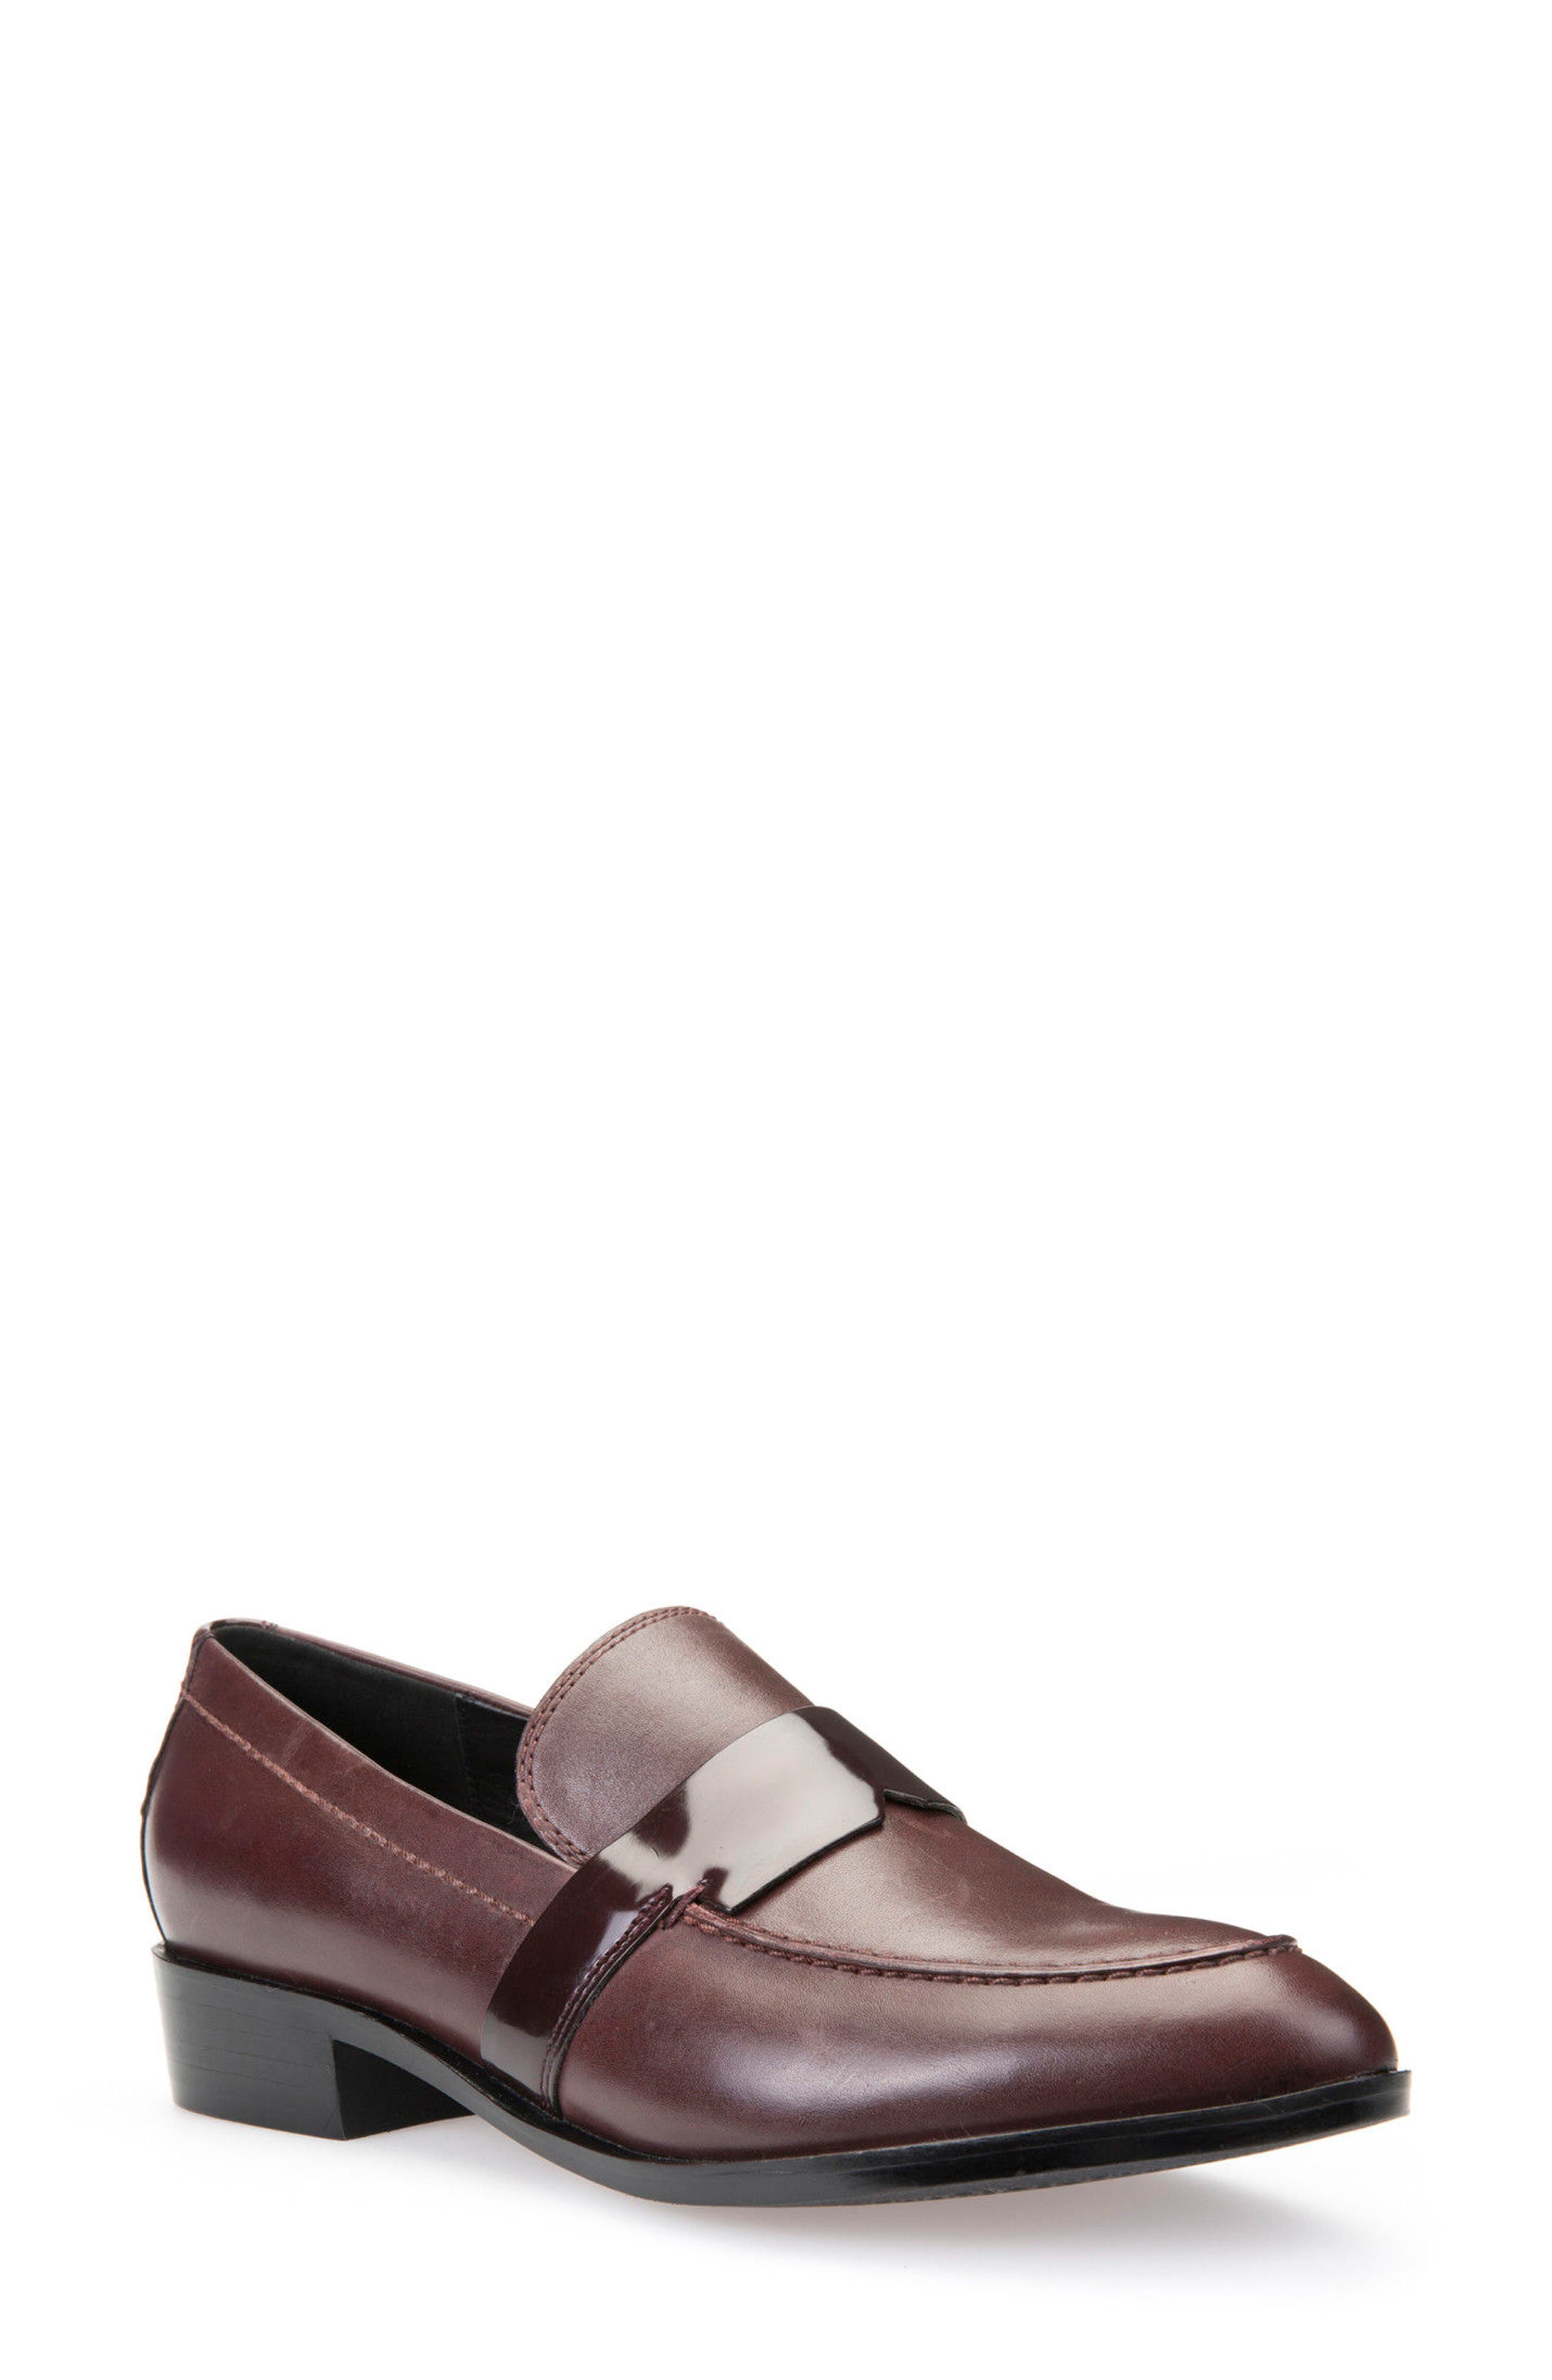 Lover Loafer,                             Main thumbnail 1, color,                             936